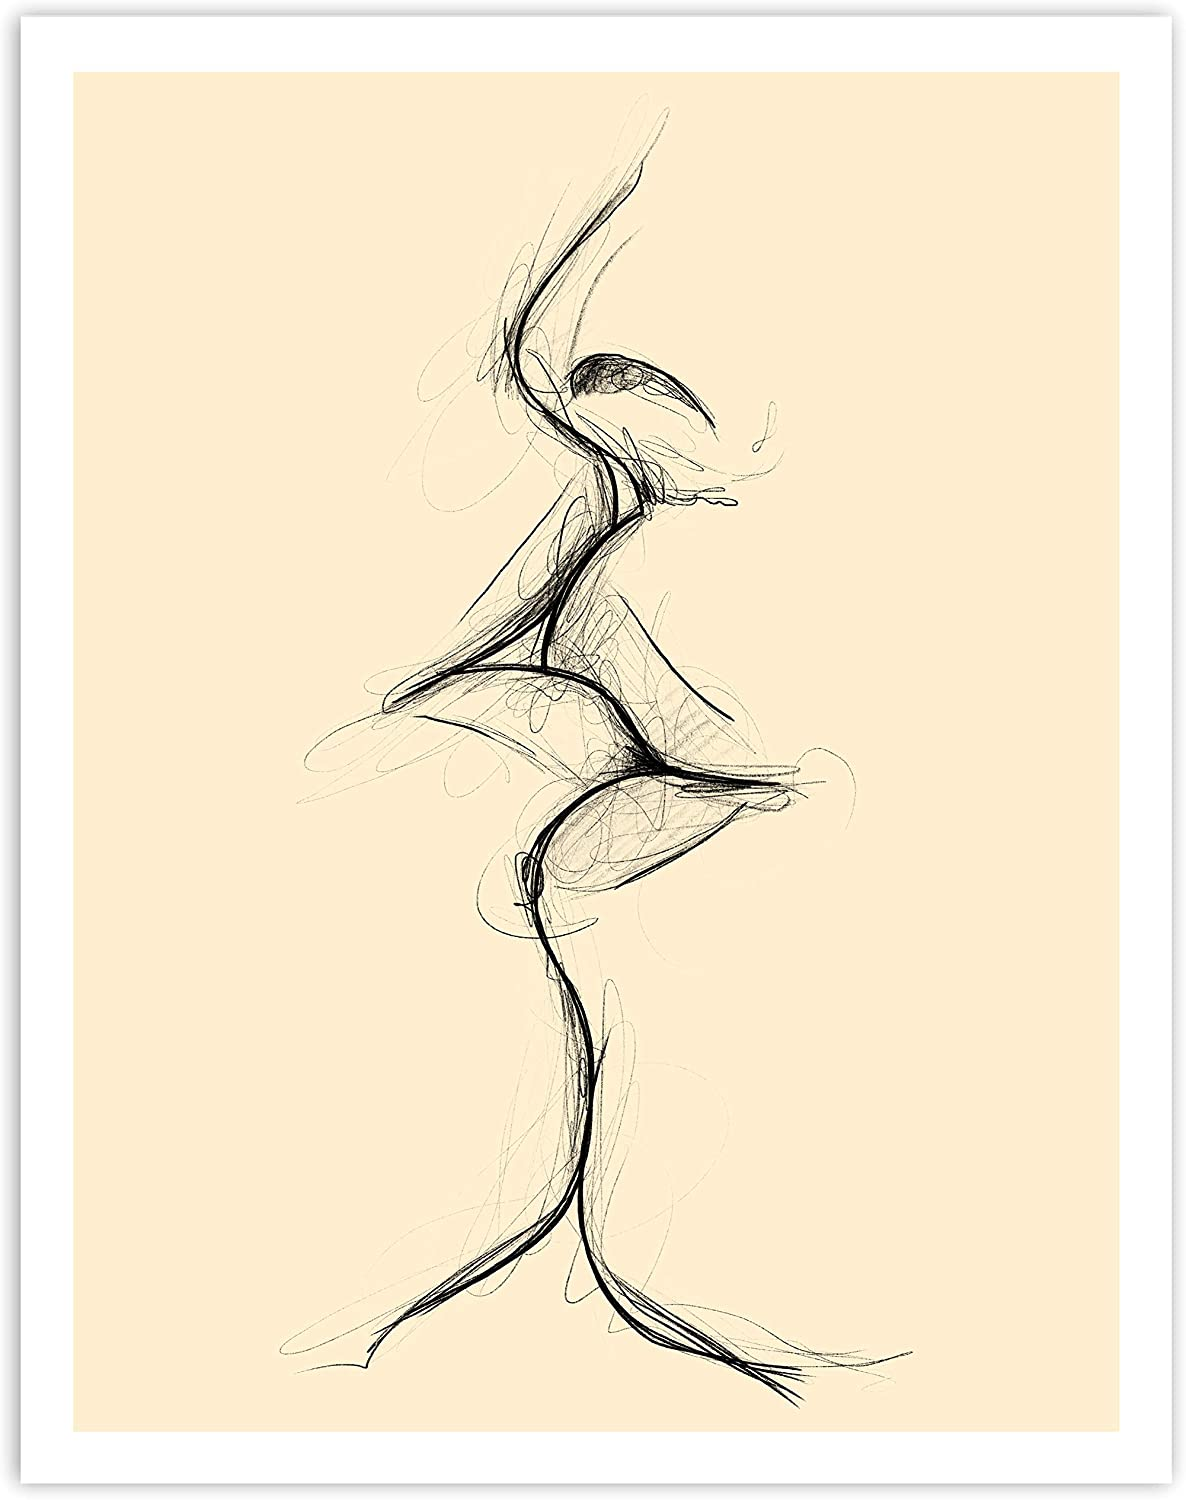 Printsmo, The Kiss Sketch, Black and Cream, Minimalist Modern Art Print Poster, Contemporary Wall Art for Home Decor 11x14 inches, Unframed